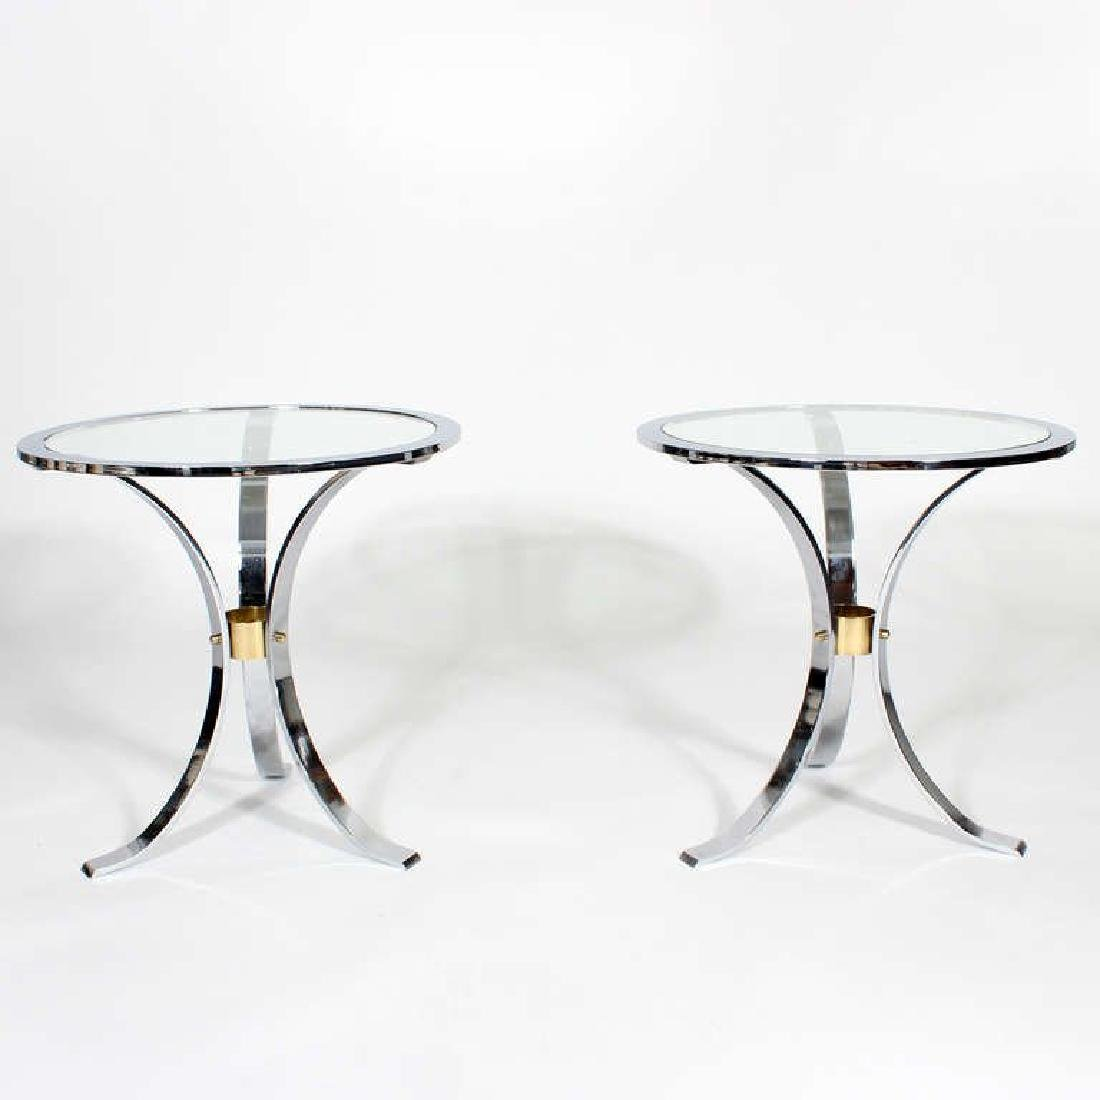 Pair of Mid Century Round Glass Inset Tables, in the